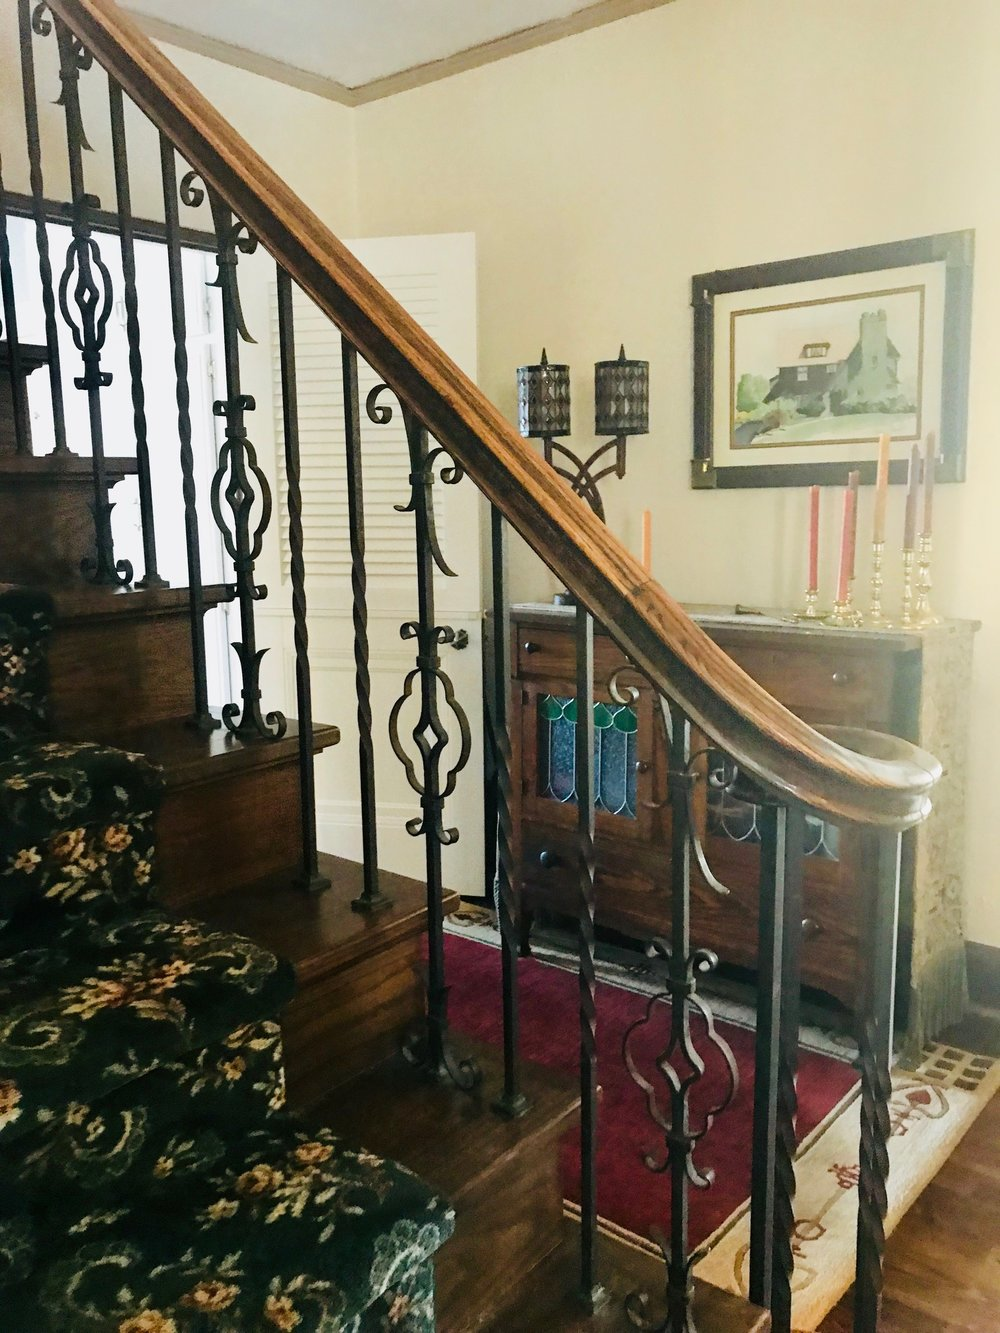 DECORATIVE WROUGHT IRON RAILING IN THE STAIR HALL